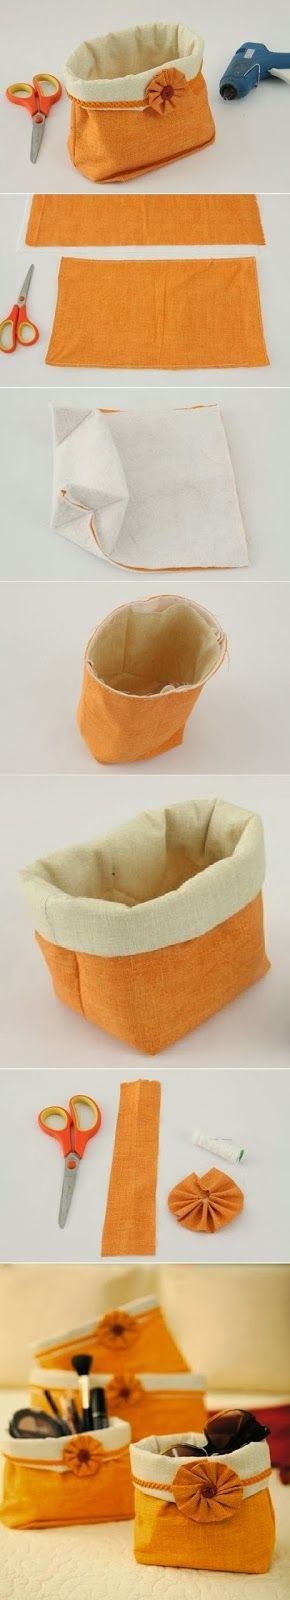 How To Make a Charming Handbag- I think these would look great as bwthroom storage for wash cloths etc.....